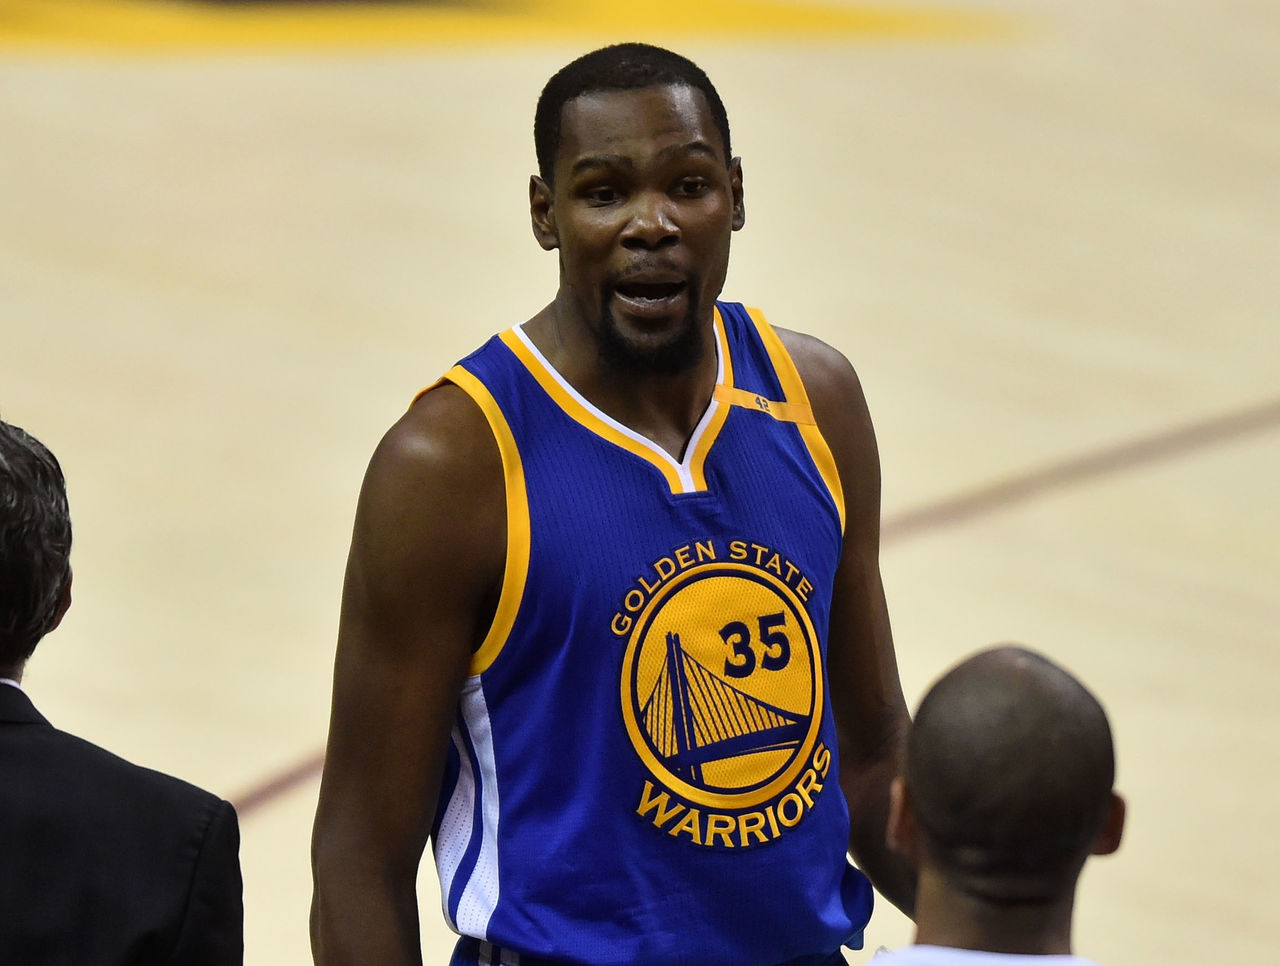 Cropped 2017 06 10t022521z 1511414706 nocid rtrmadp 3 nba finals golden state warriors at cleveland cavaliers